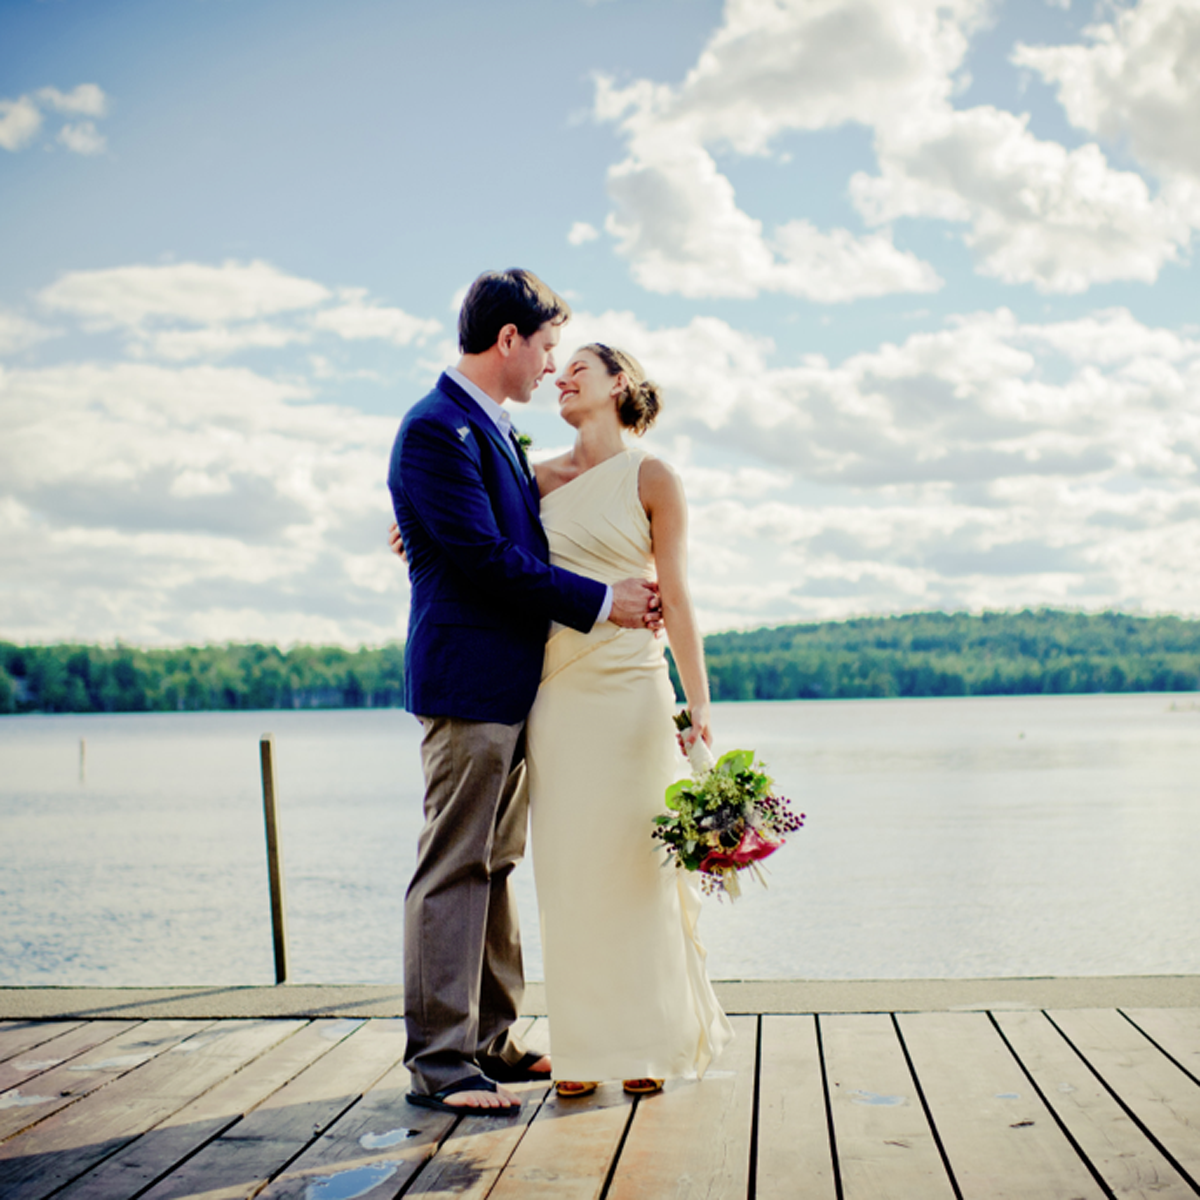 Hannah and Ryan Tie the Knot - New Hampshire